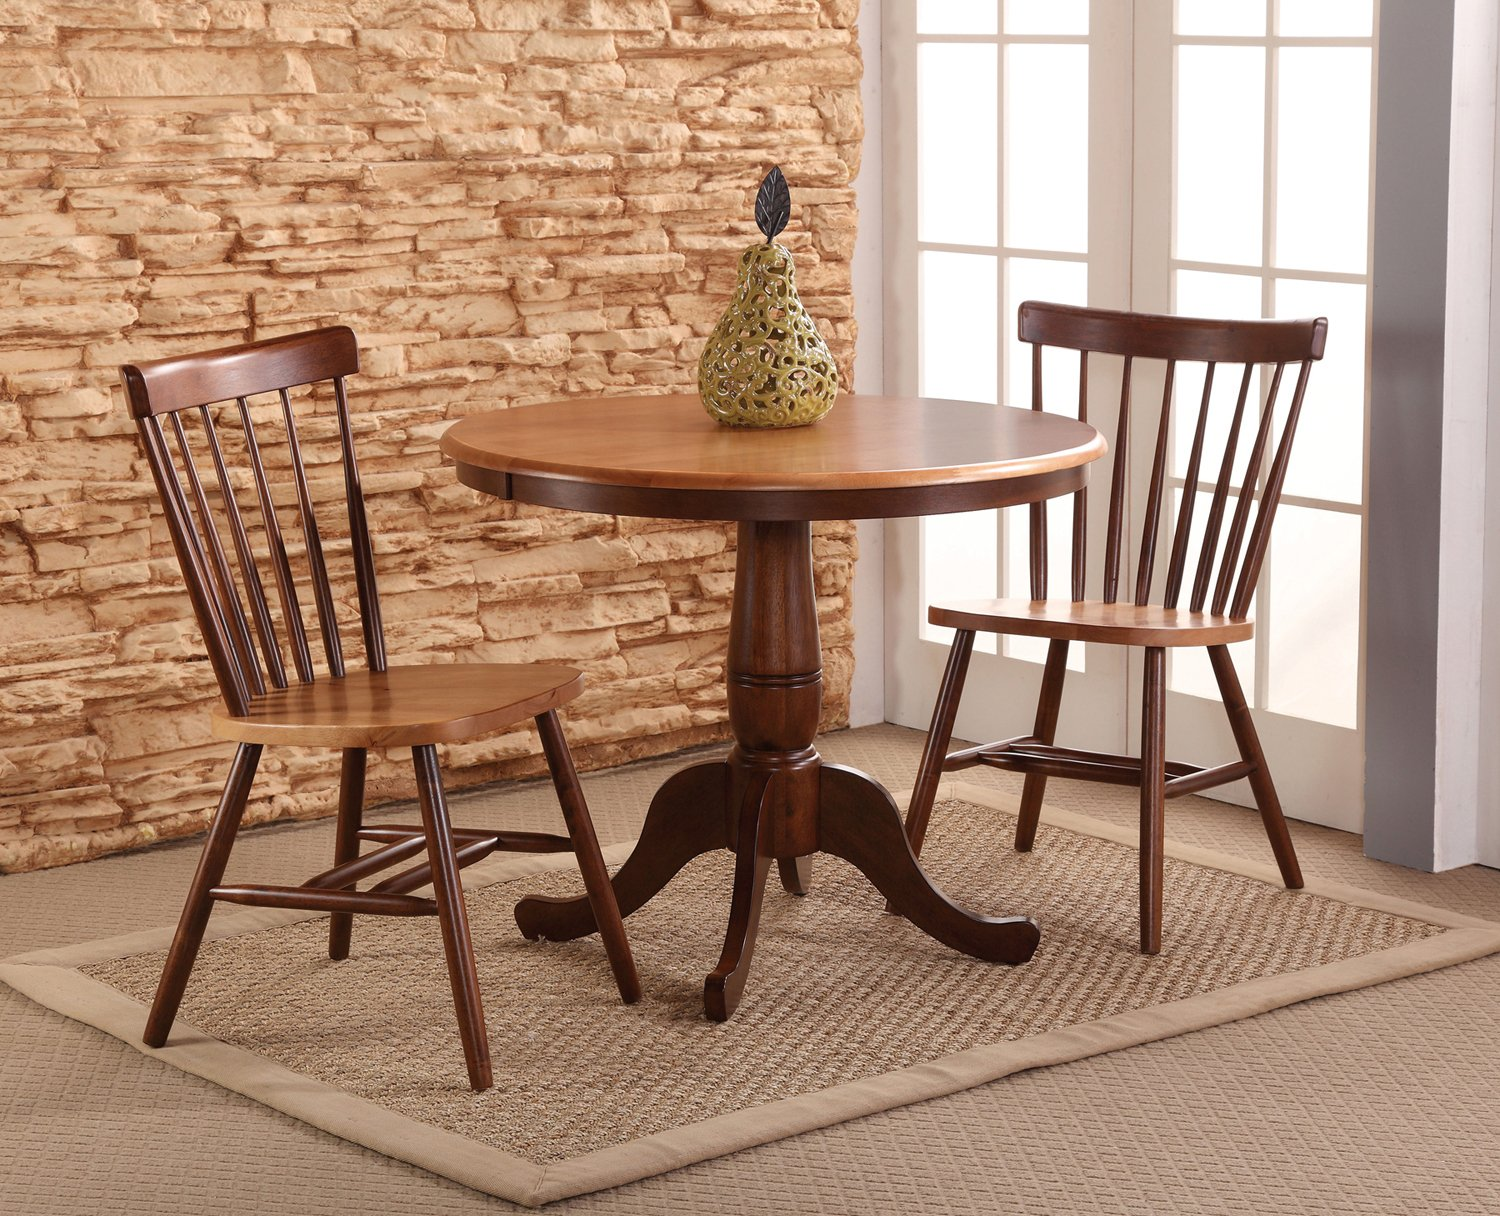 International Concepts 36-Inch Round Pedestal Table with 2 Copenhagen Chairs, Set of 3 by International Concepts